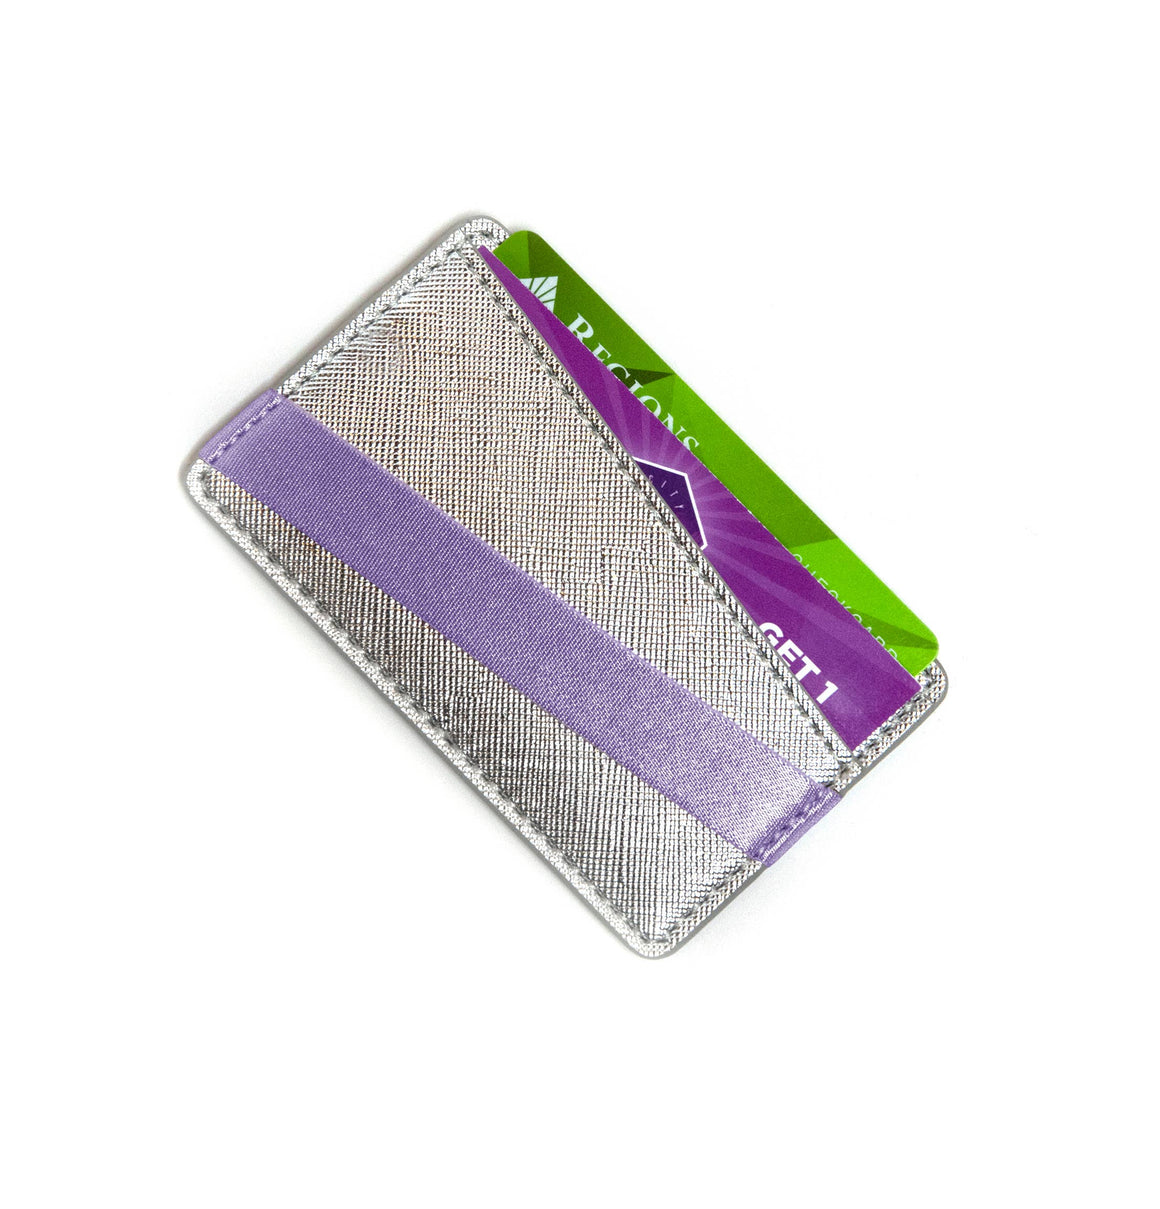 Origami Phone Back Wallet - Platinum & Lavender